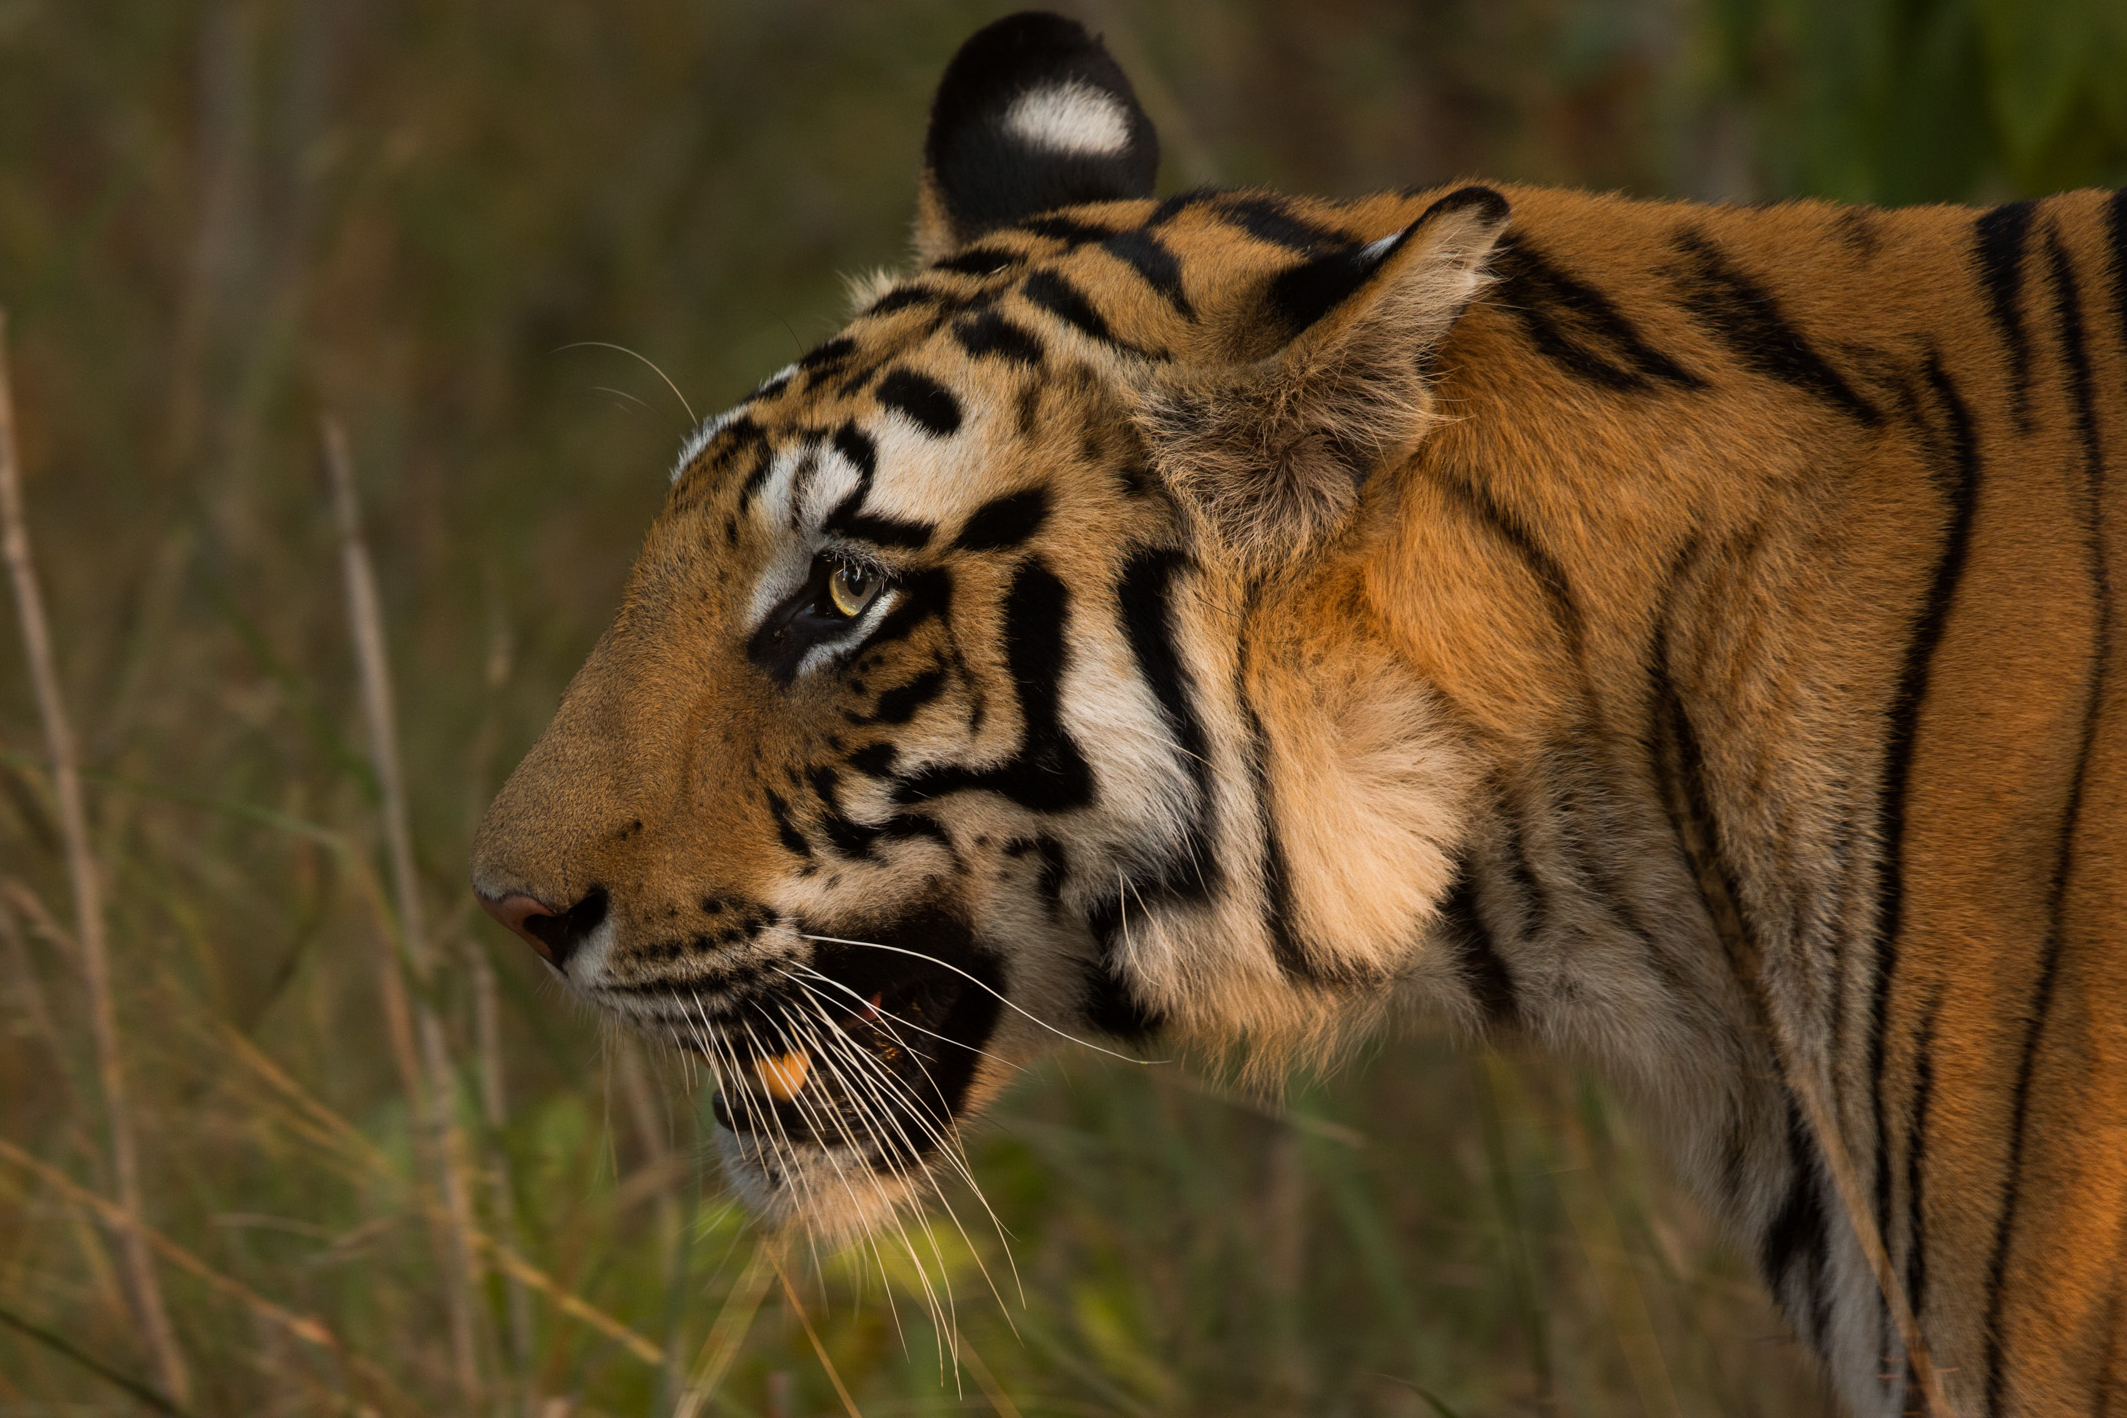 She emerged from the bamboo, striding right past our jeep. This is her land, her territory, and we are nothing to her. Tiger (Panthera tigris). CLICK IMAGE for full screen.